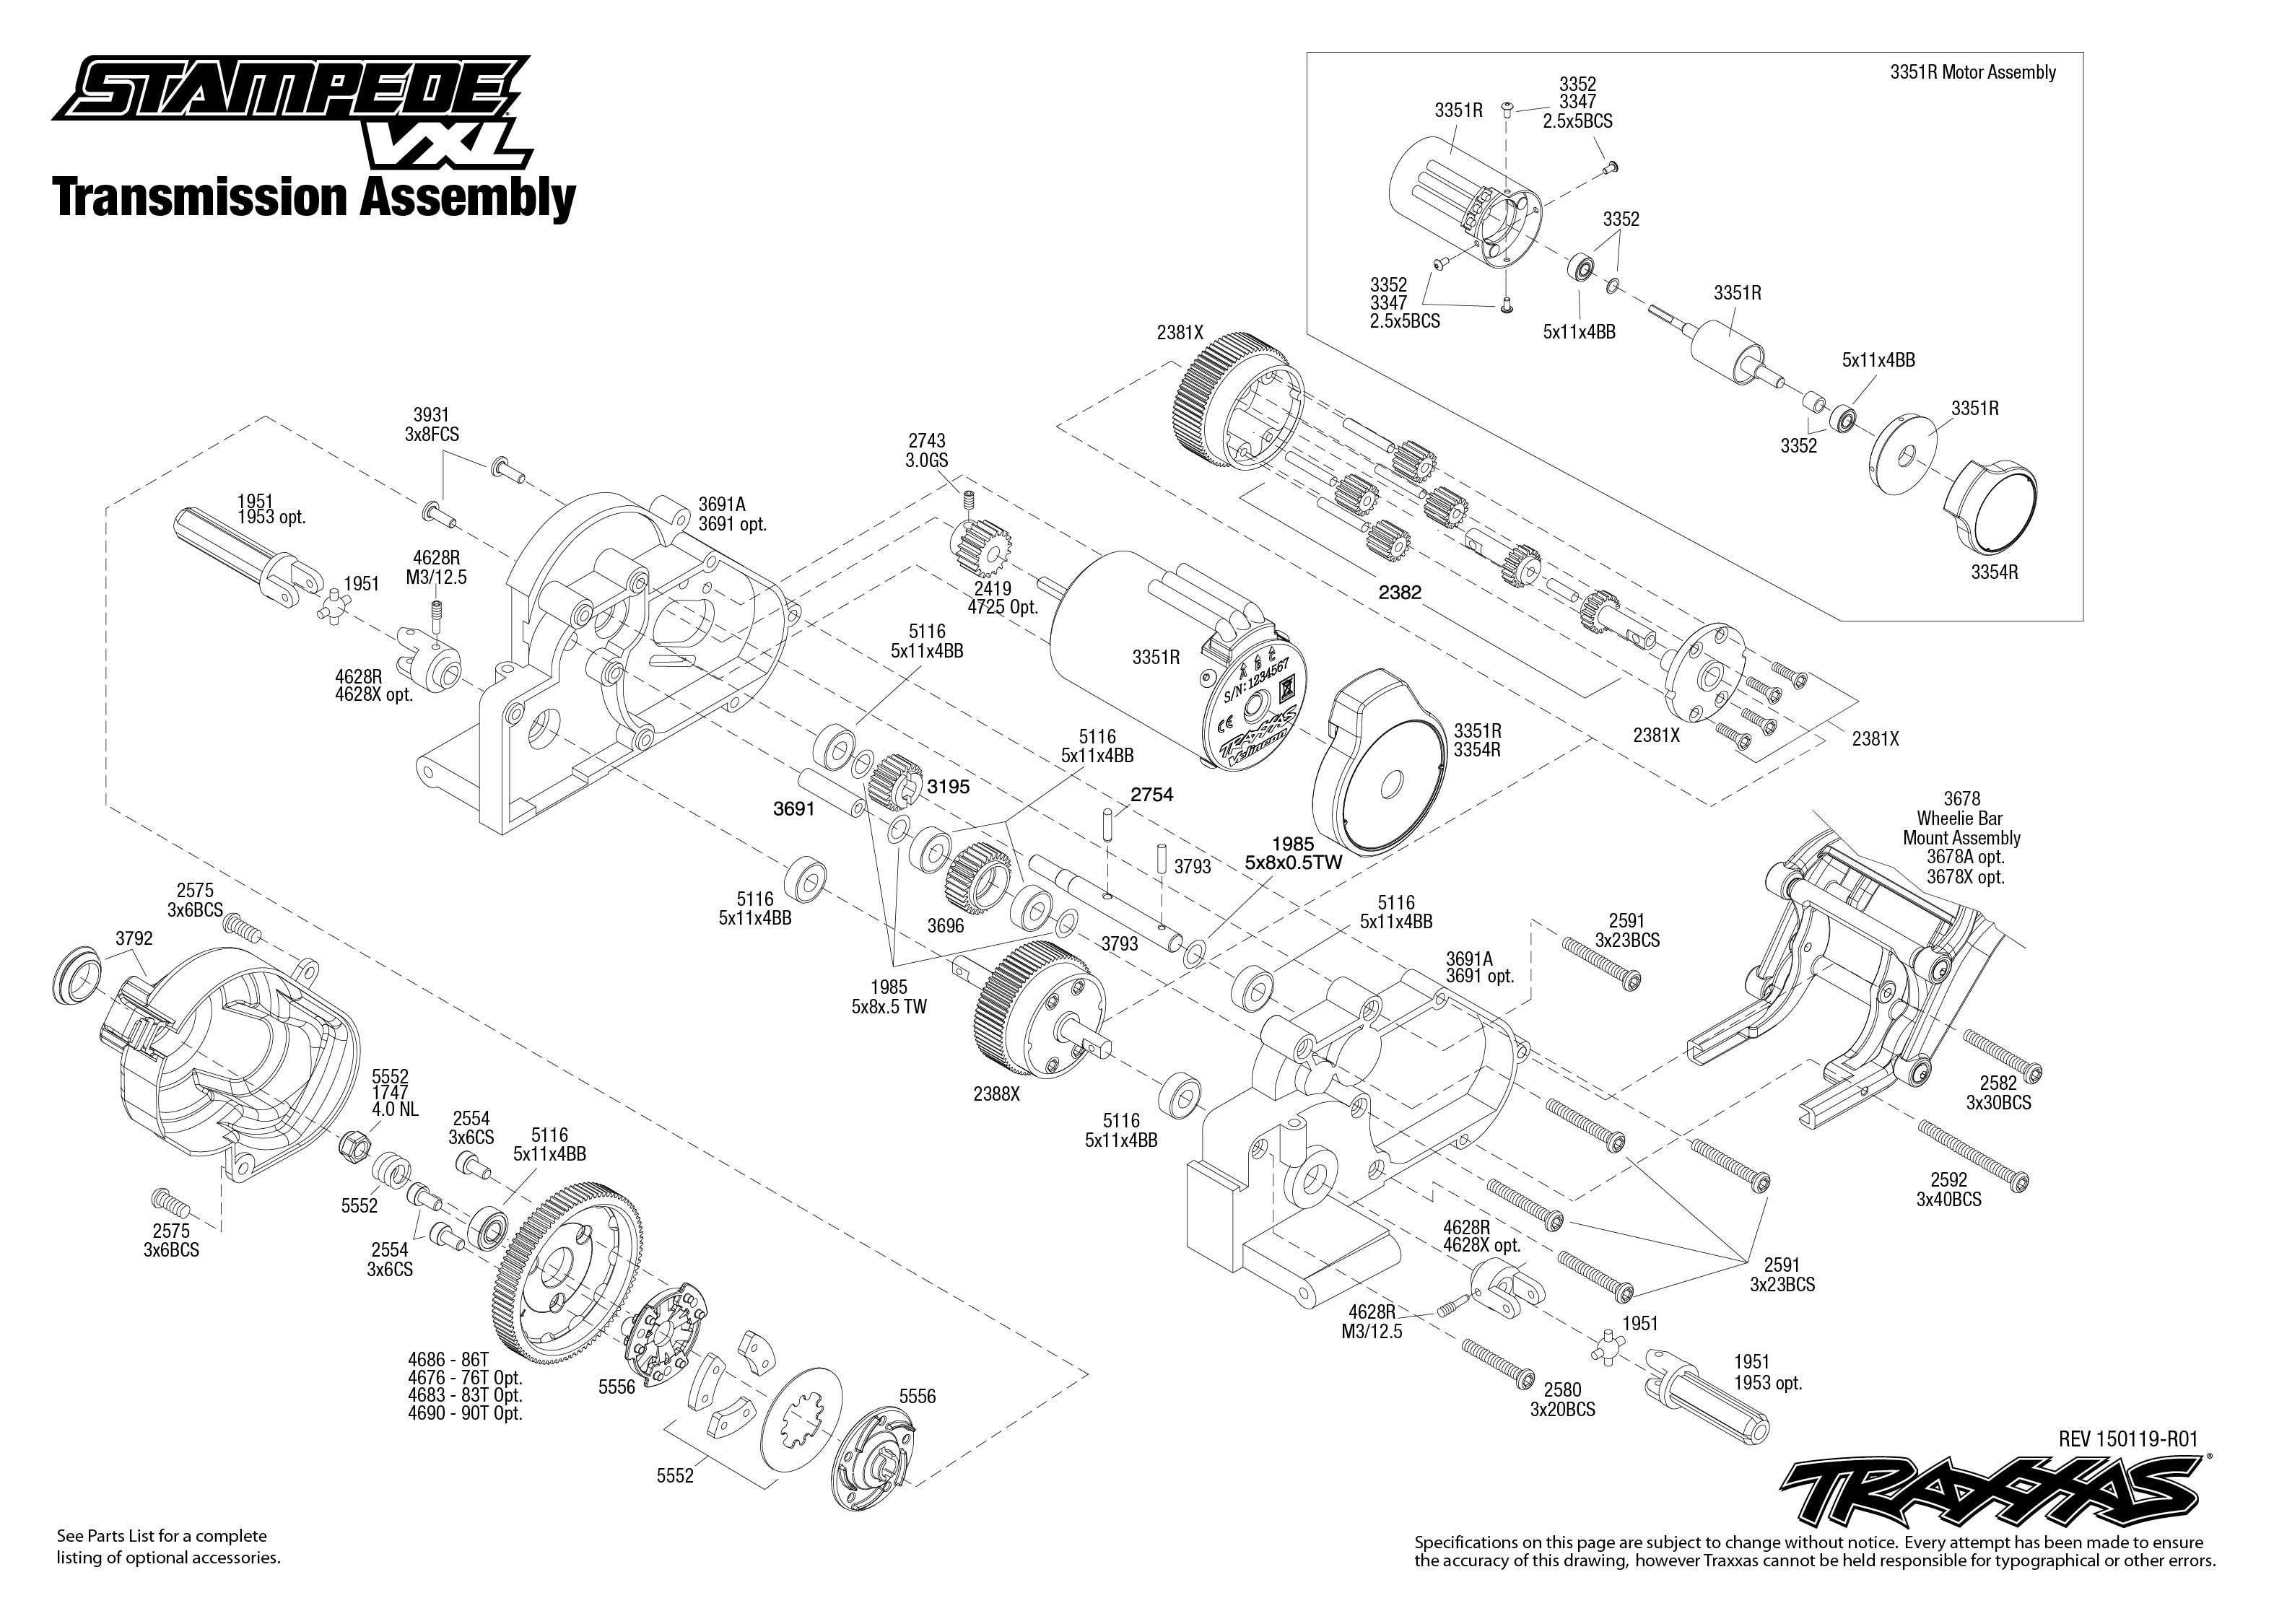 Stampede VXL (36076-1) Transmission Assembly Exploded View